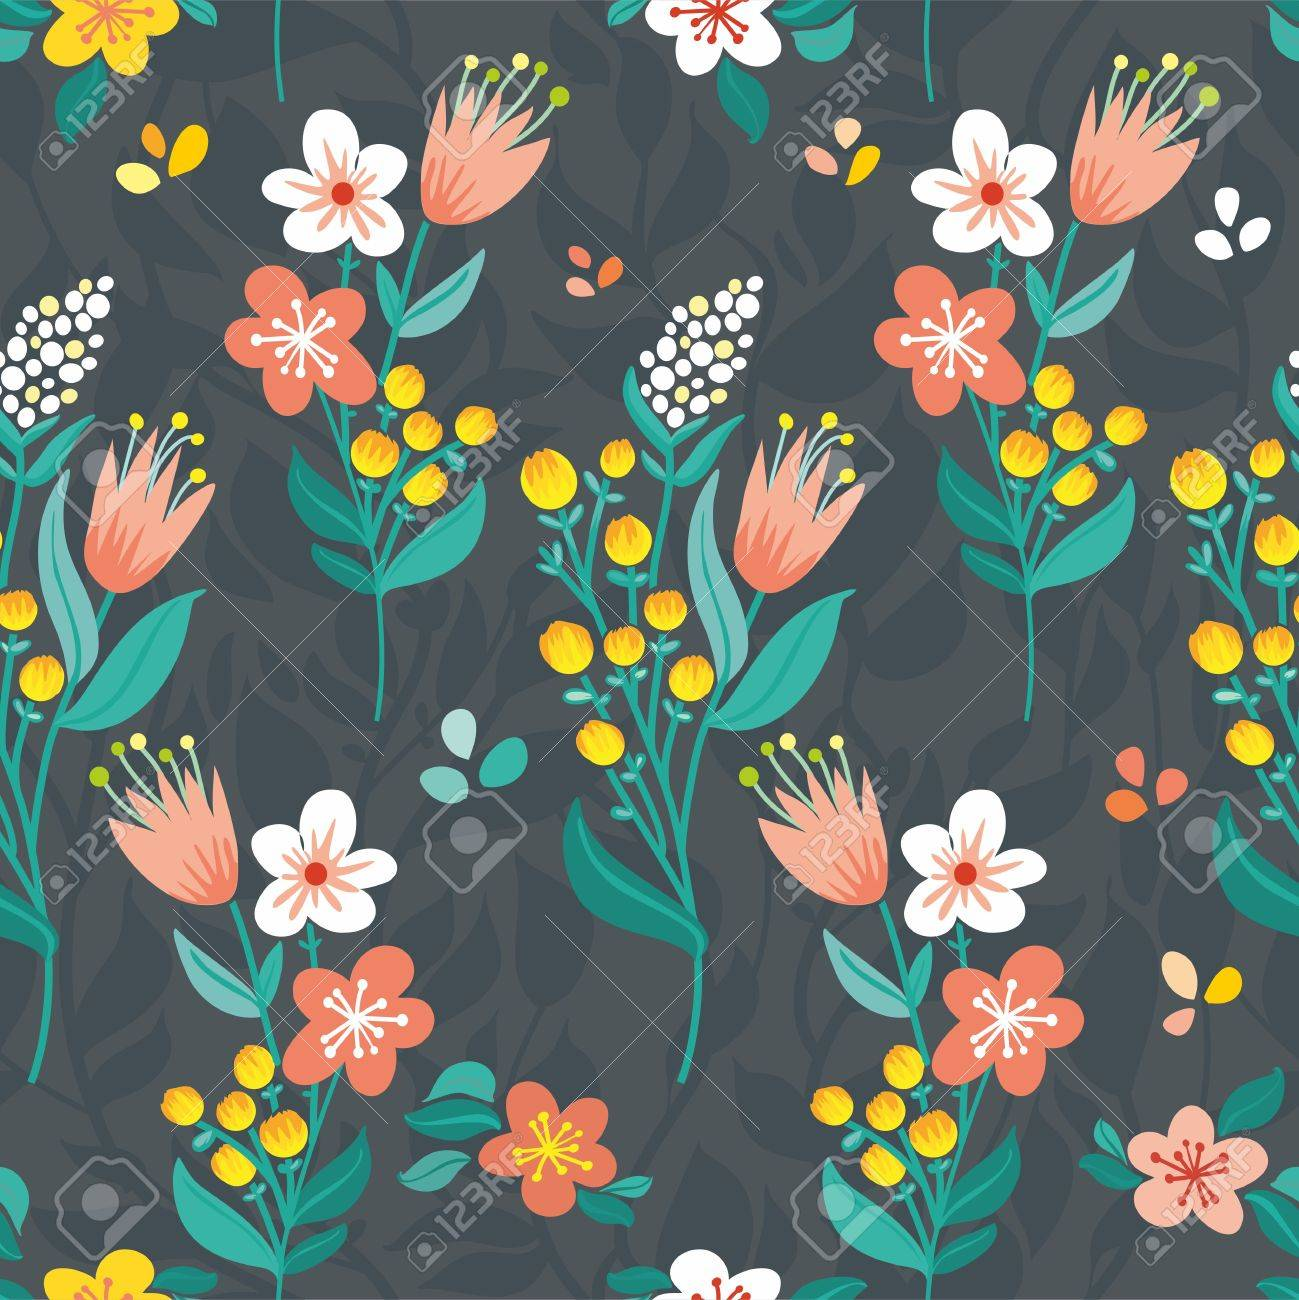 Beautiful stylized flowers, summer flowers blue background, bright flowers and leaves upright - 13275849